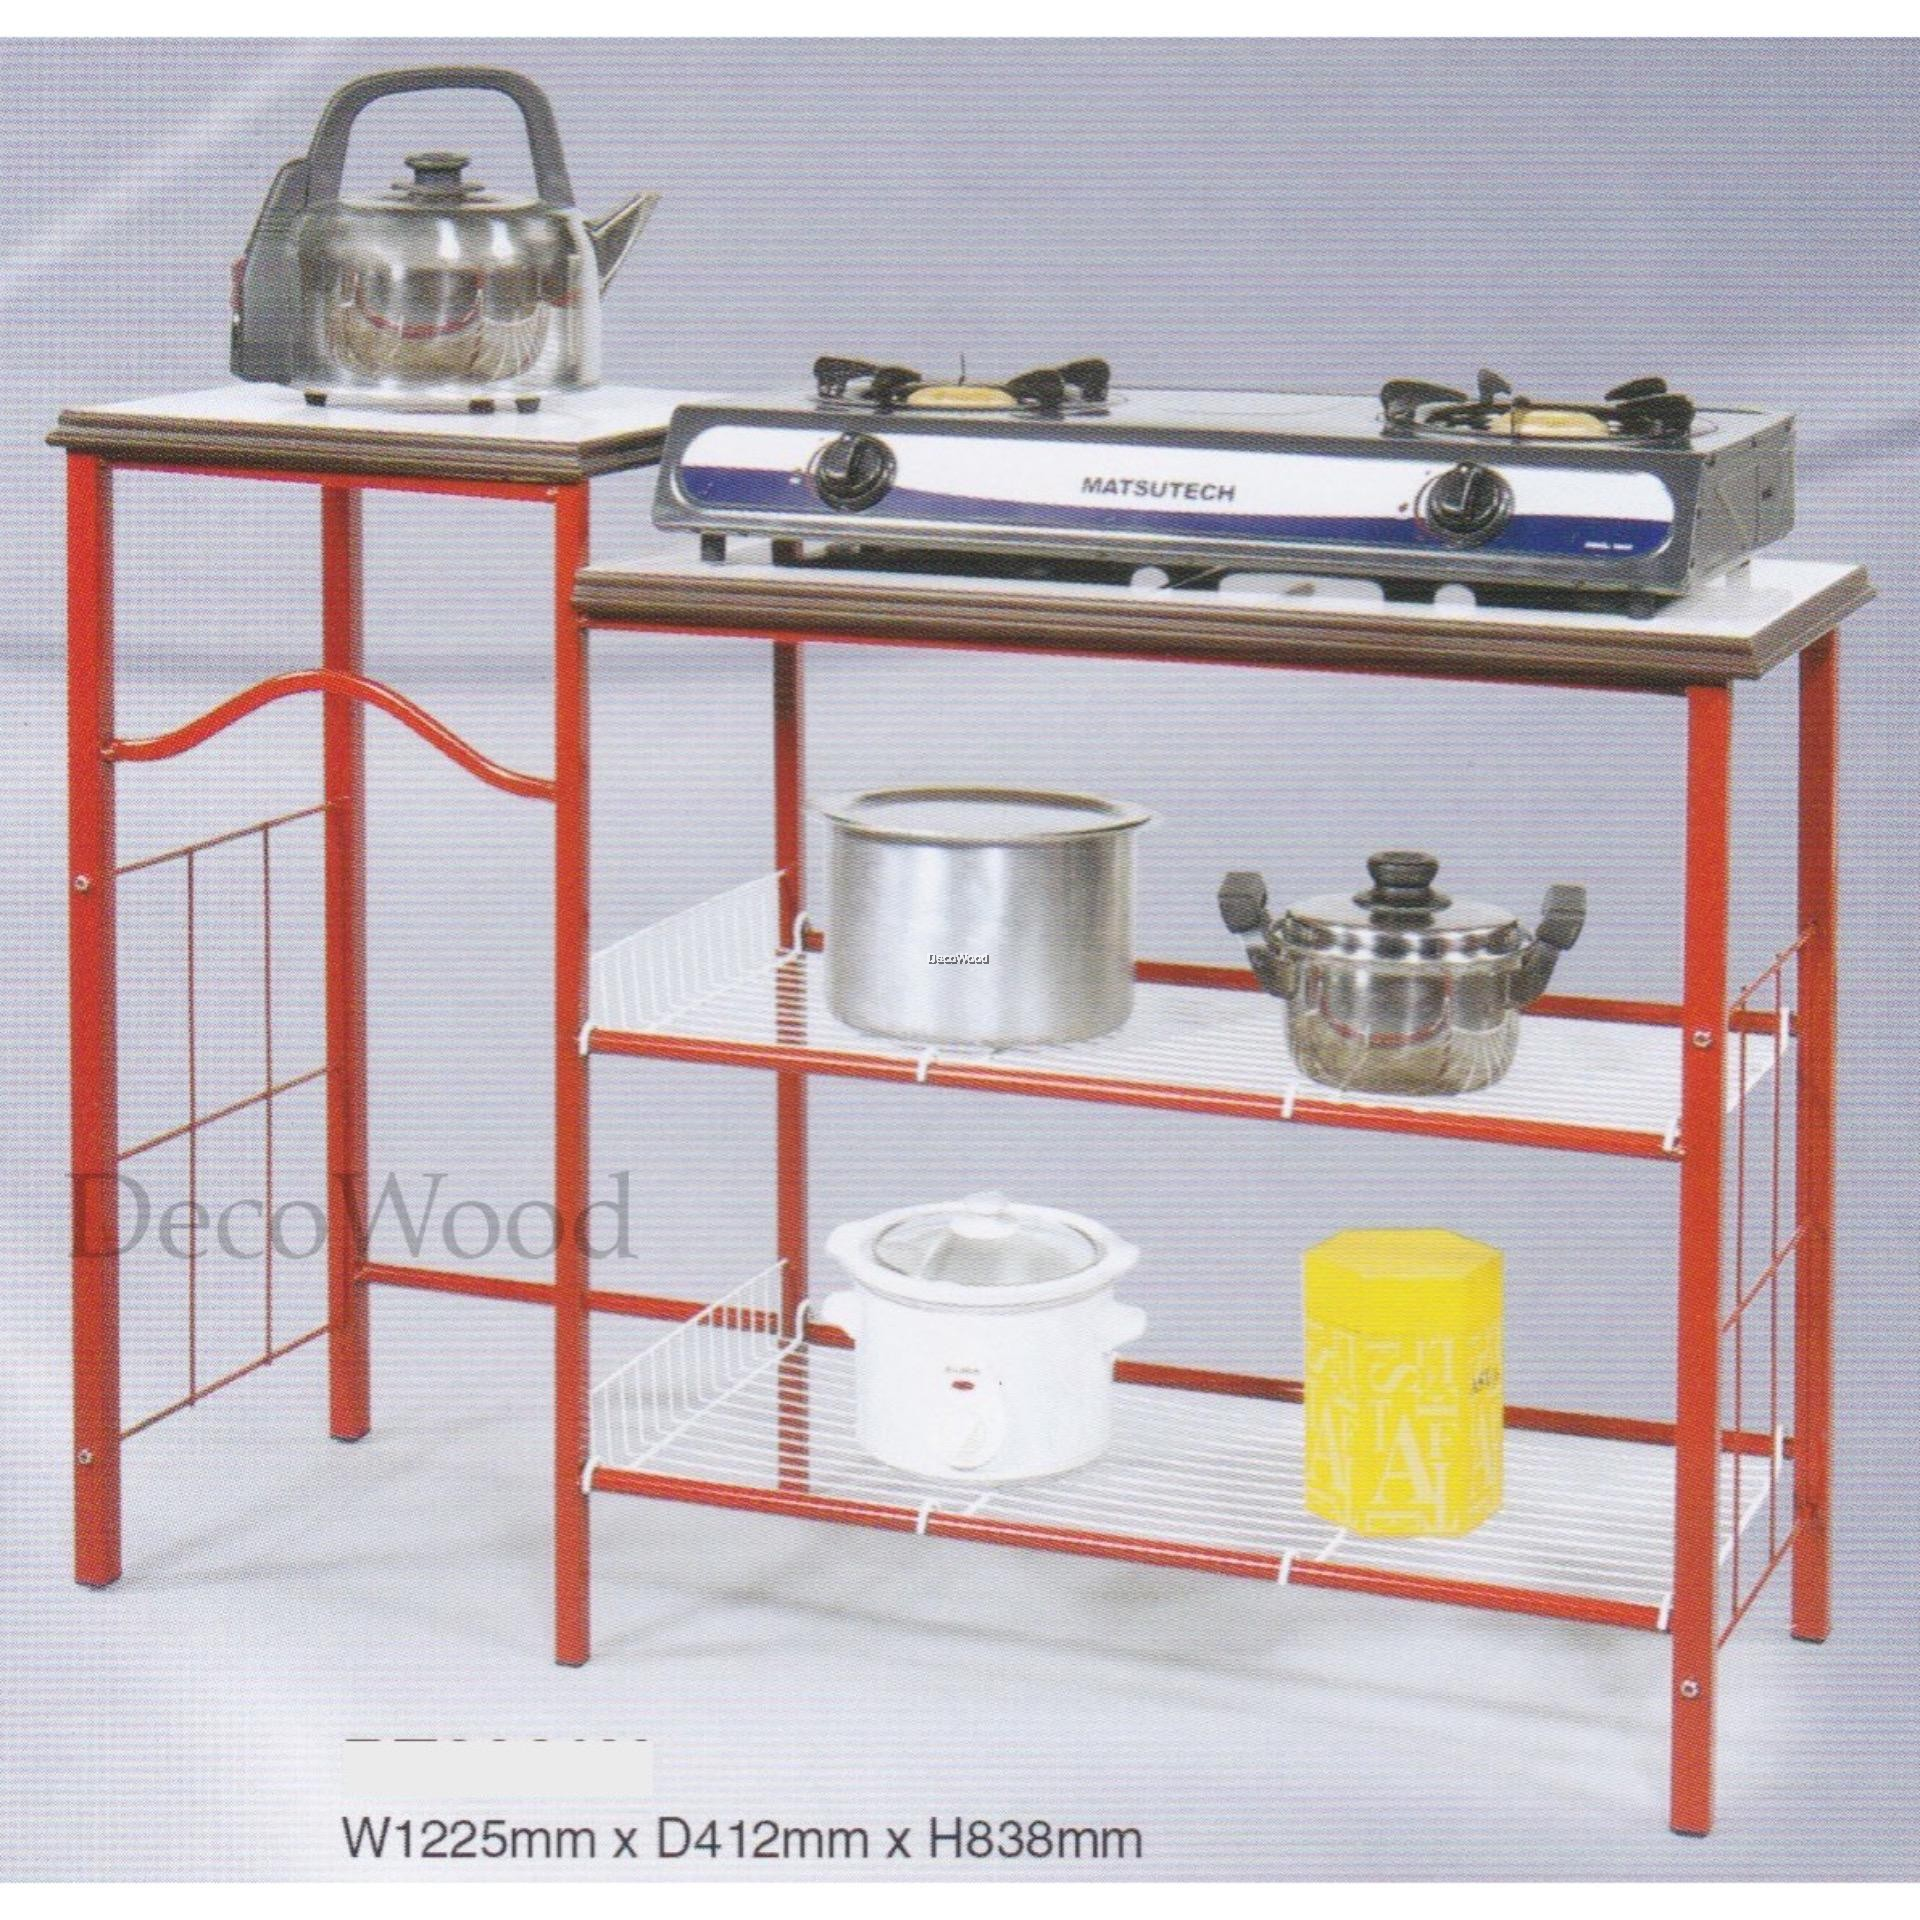 Anti Rust Strong Kitchen Stove Rack With Ceramic Tiles Top Gas